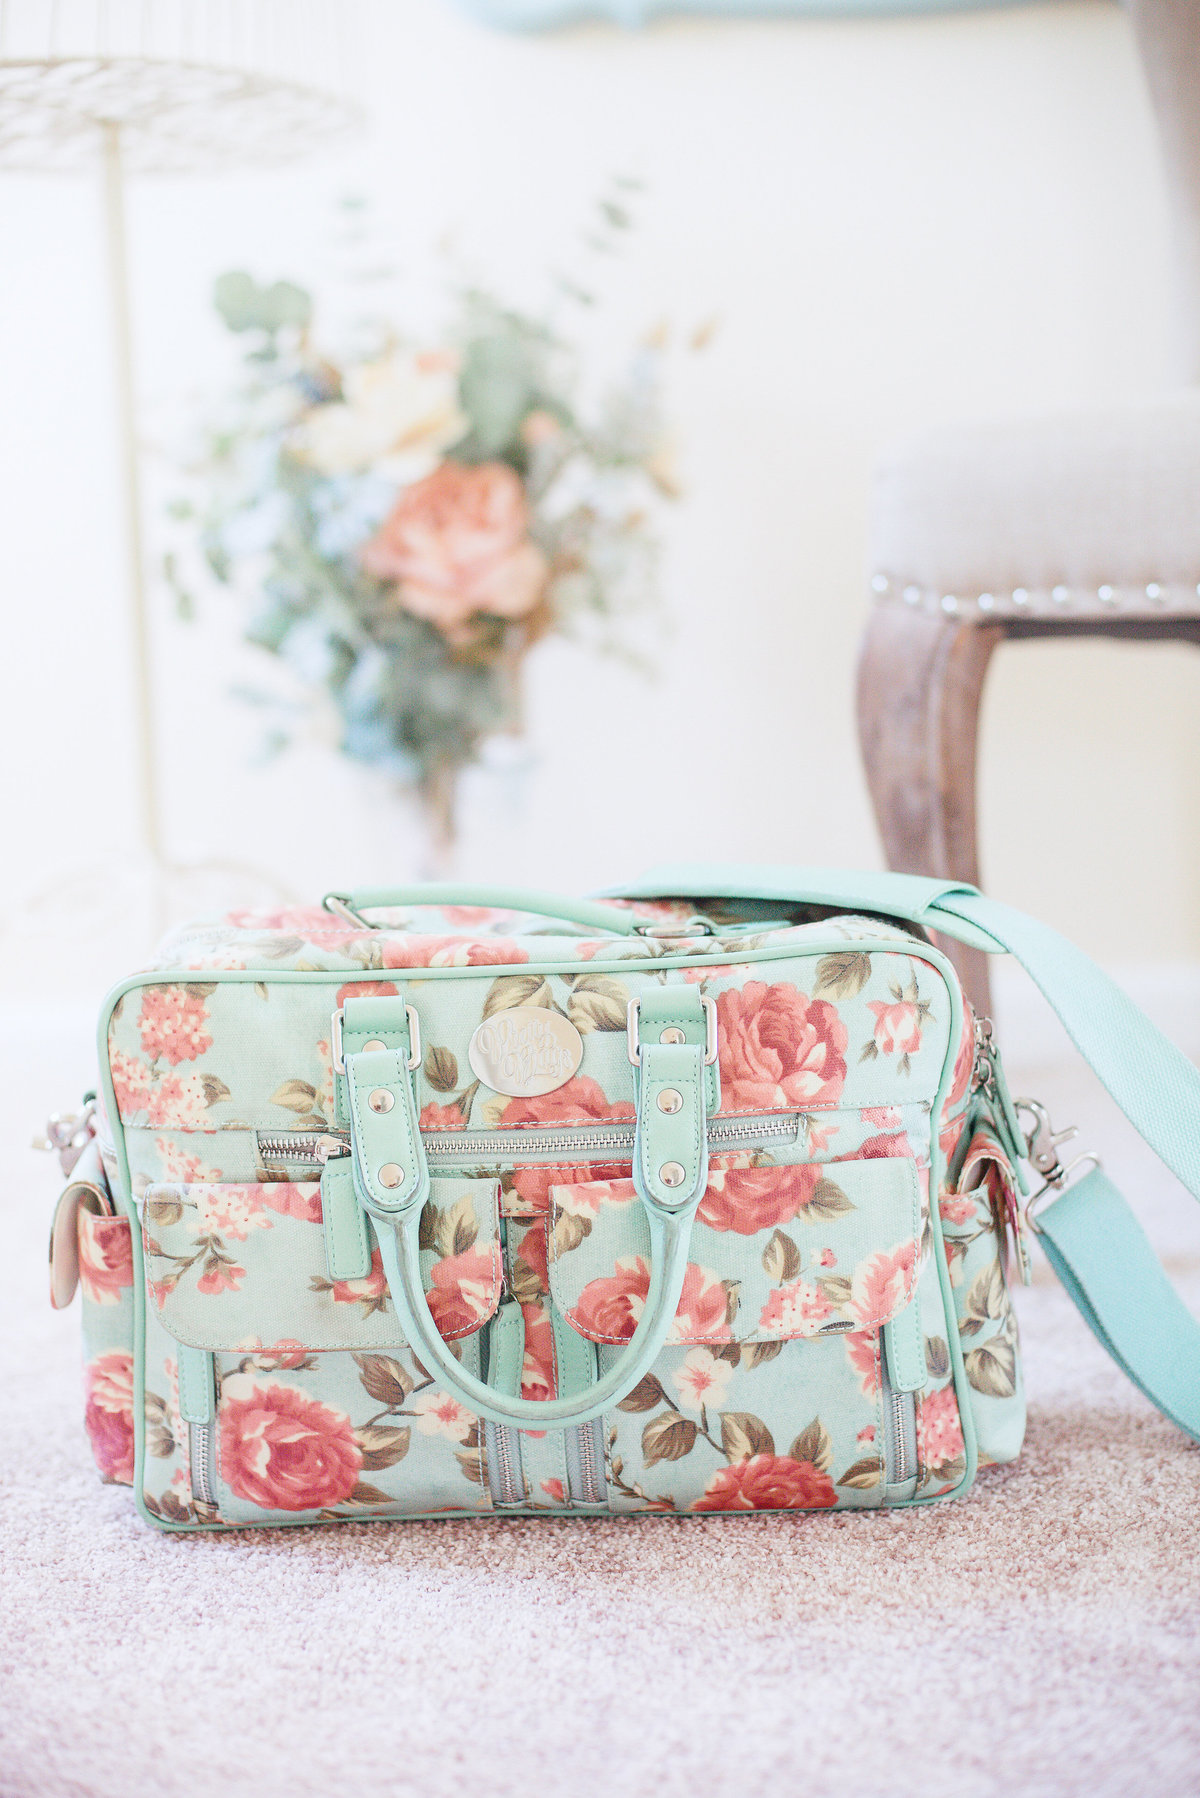 Floral camera bag by Pretty Bags